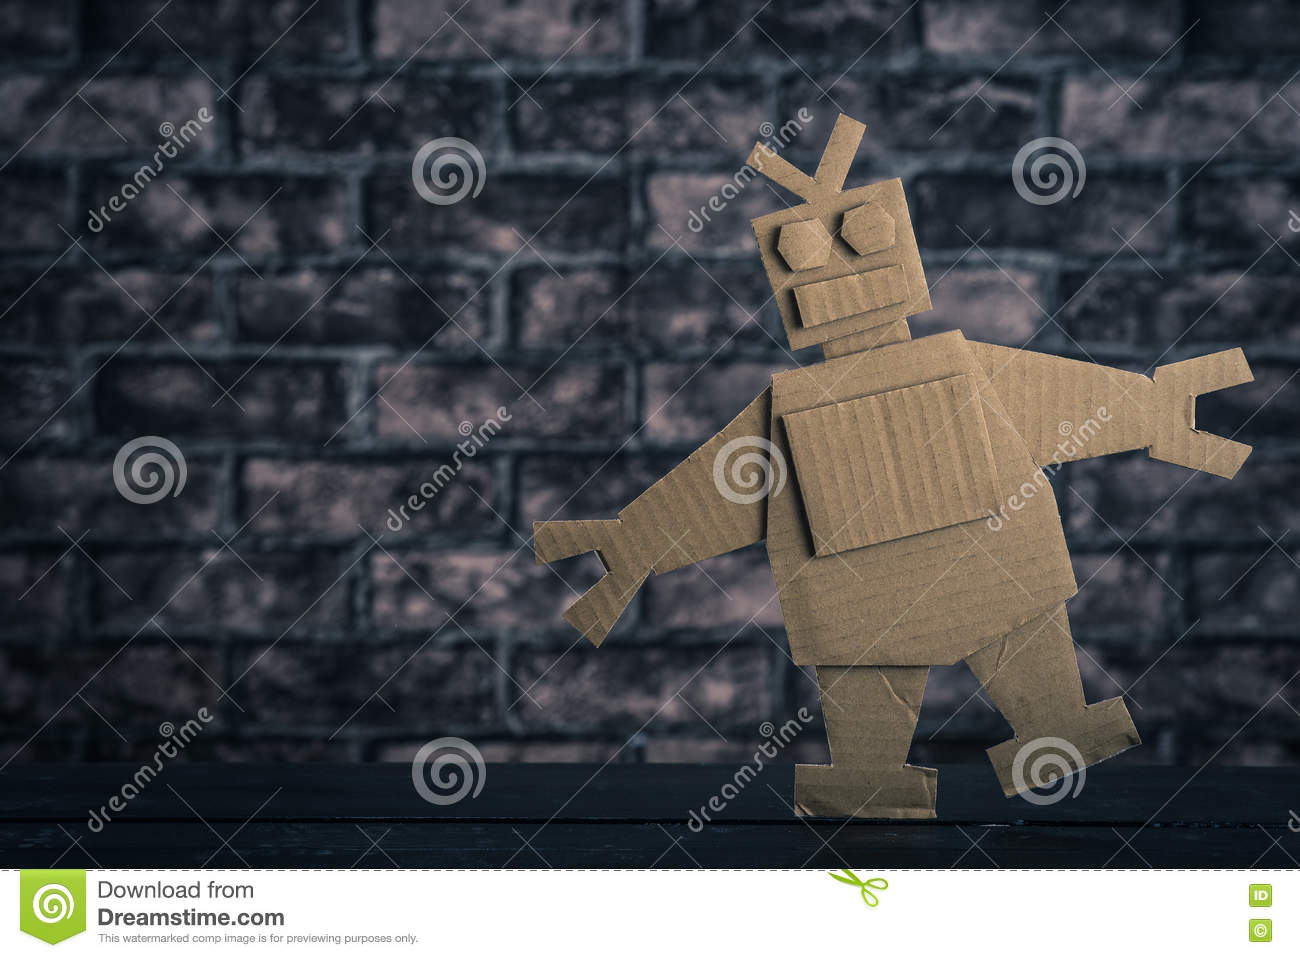 Robot made of paper